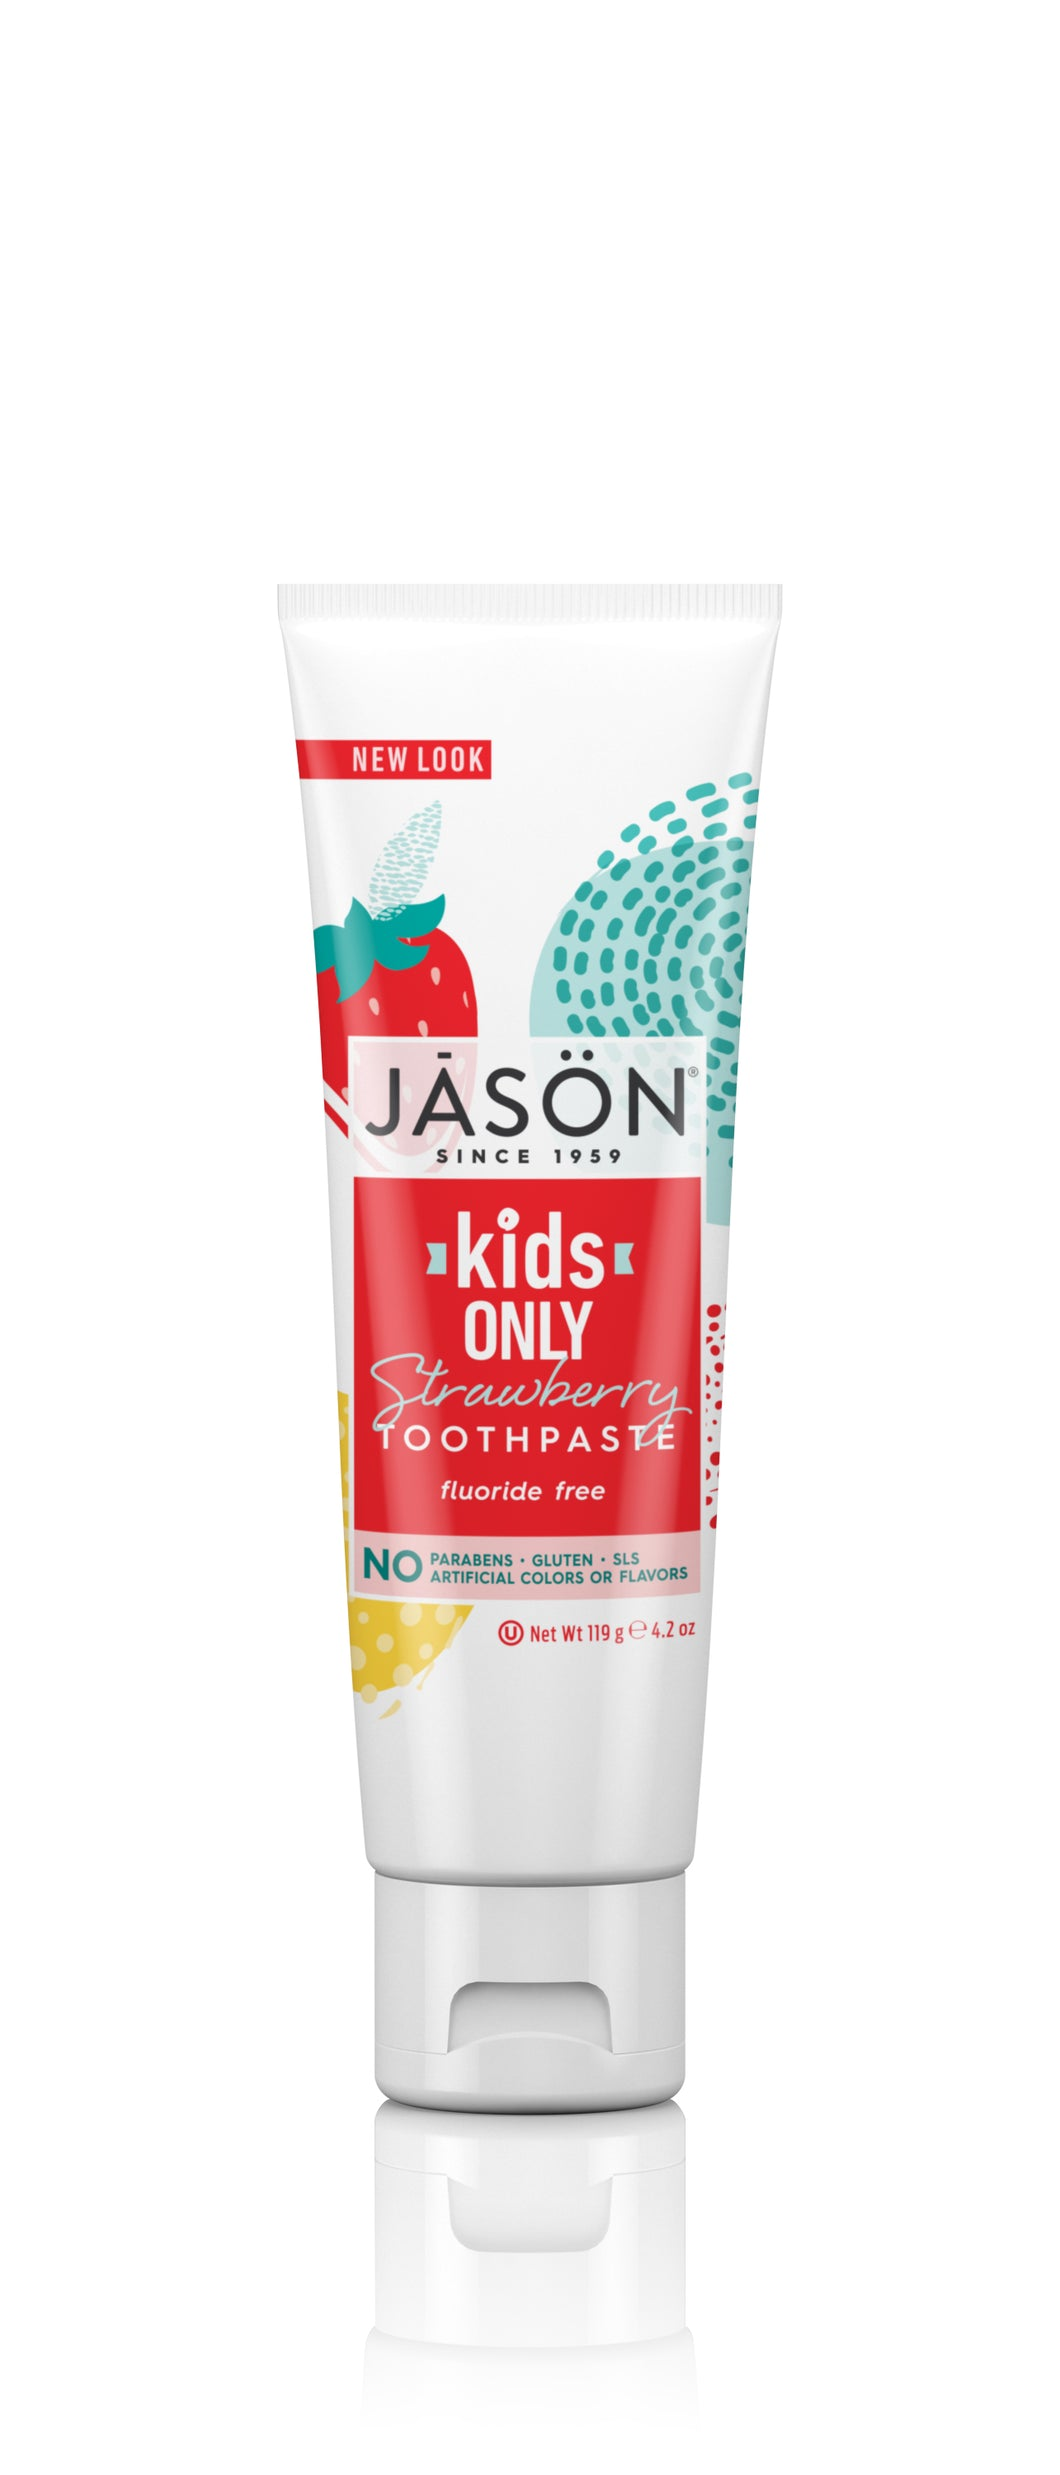 Kids Only Strawberry Toothpaste